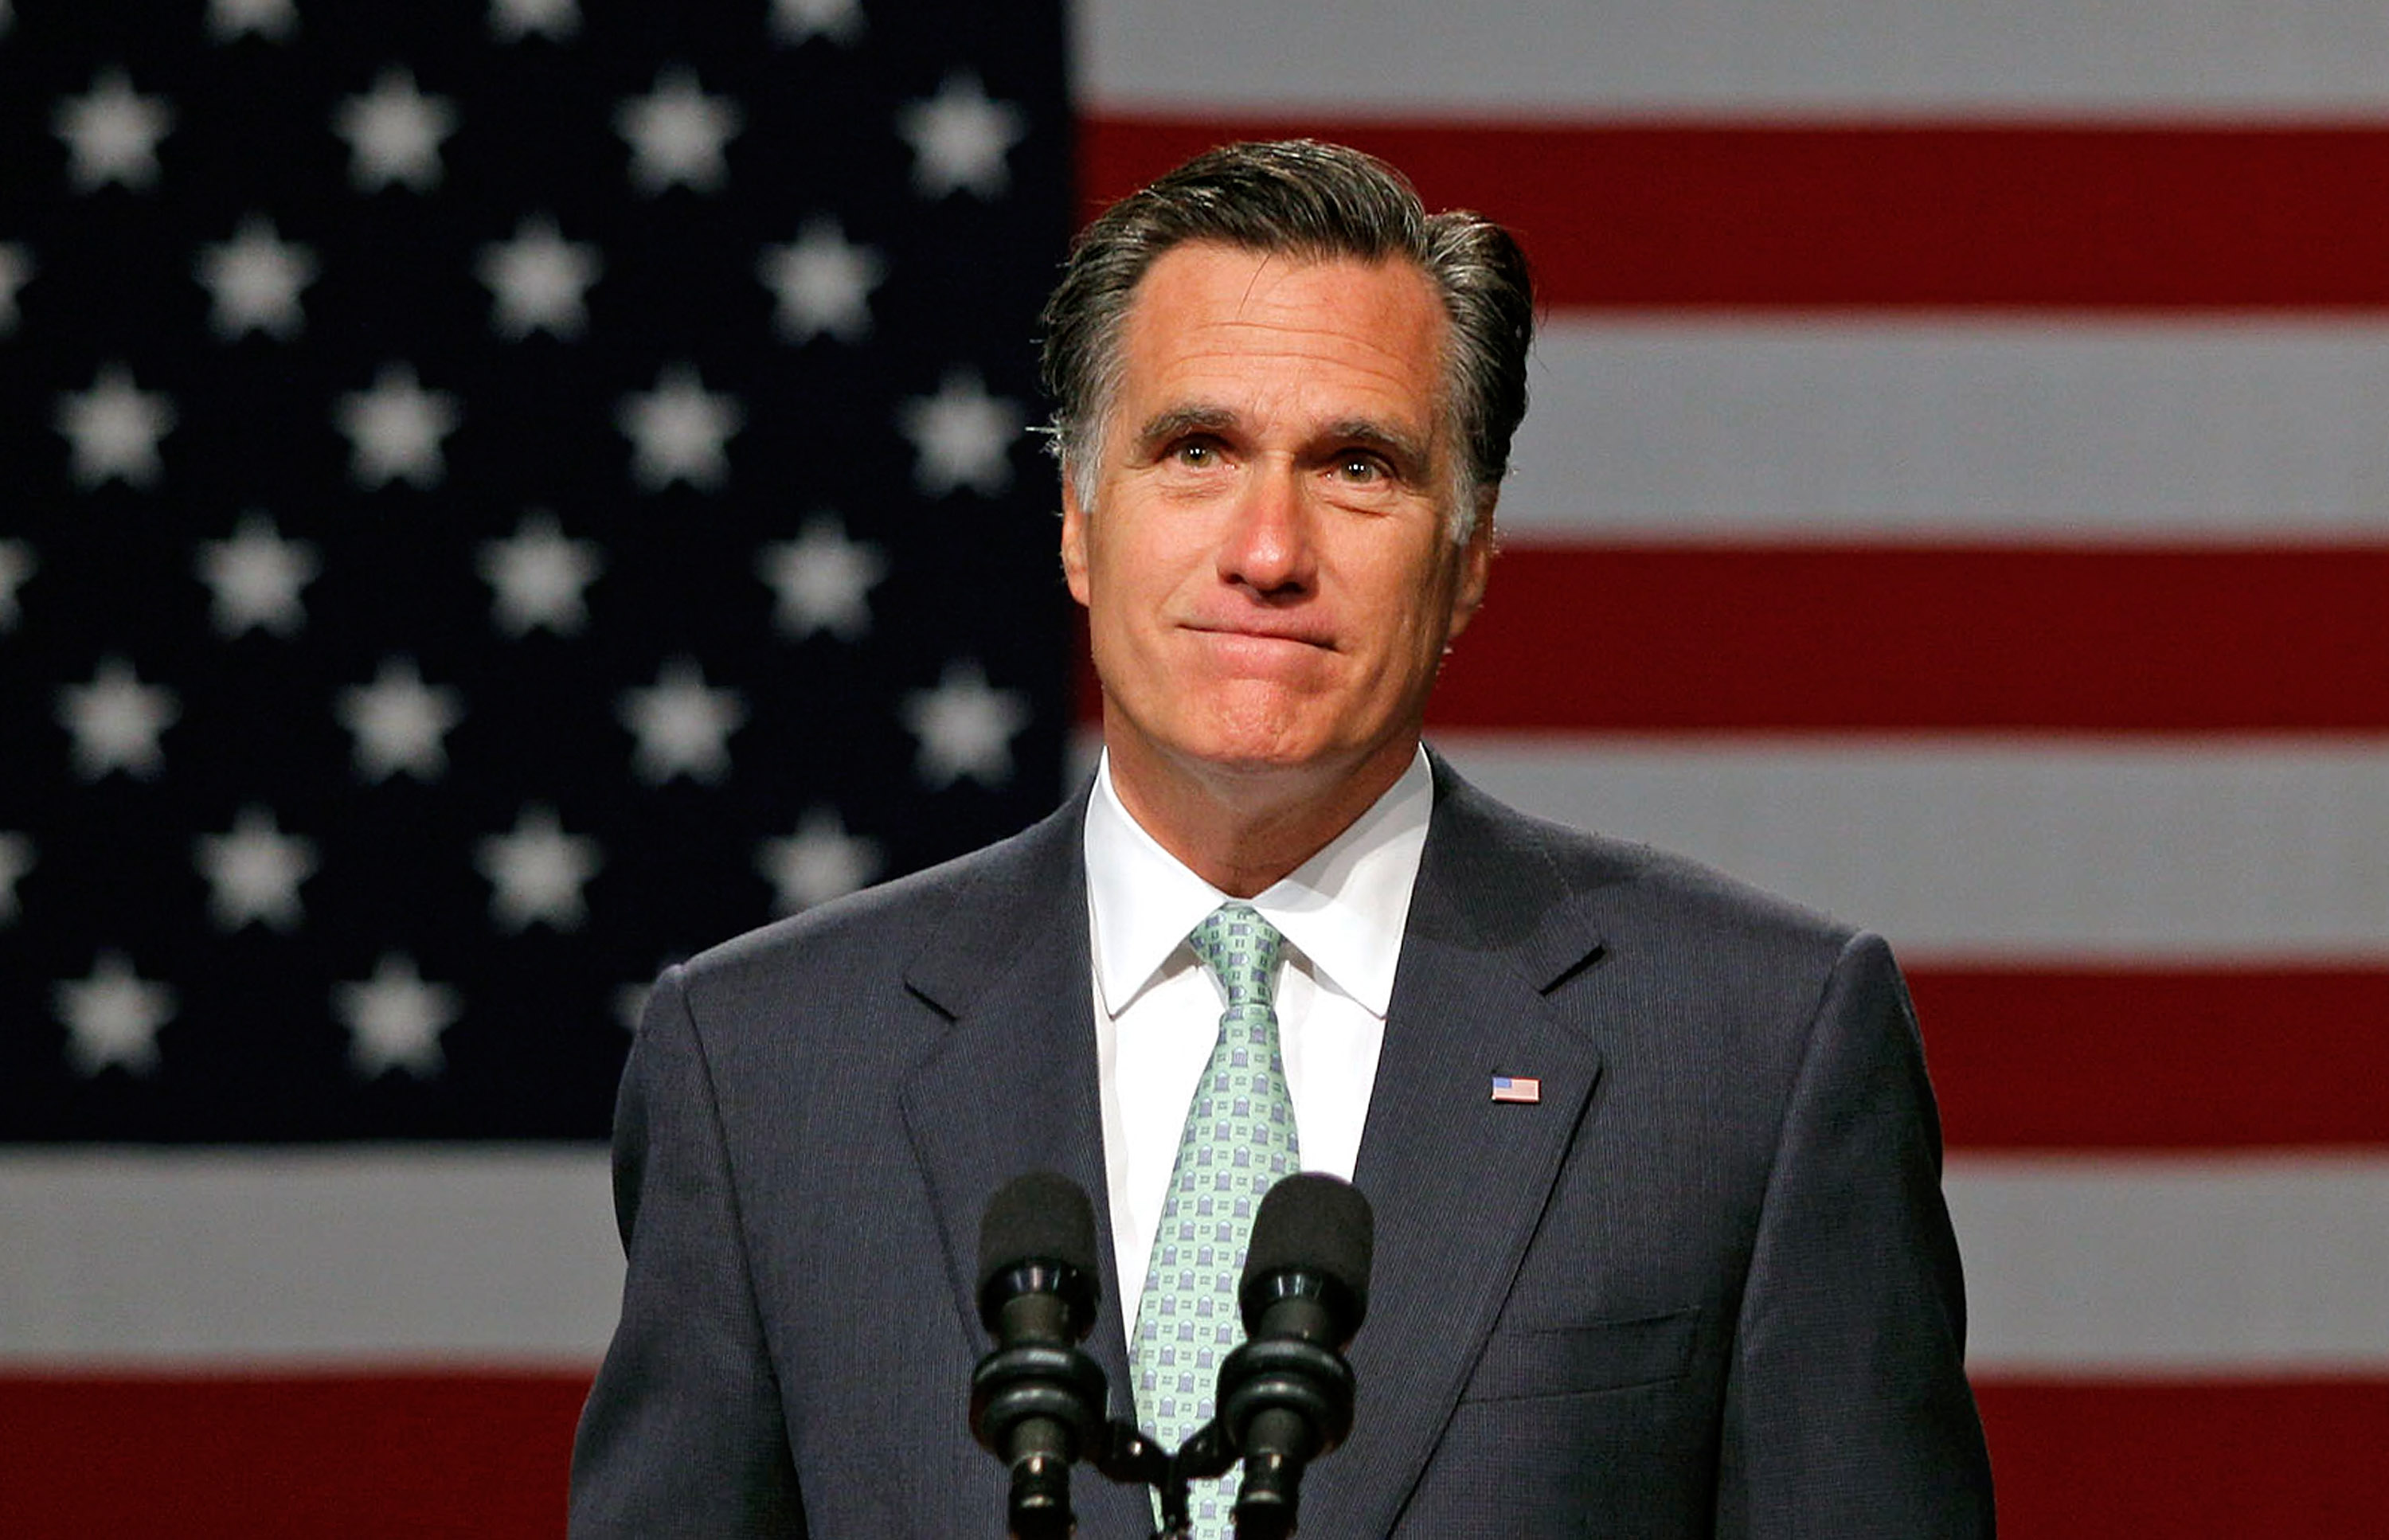 Mitt Romney speaks during a campaign stop at Lansing Community College on May 8, 2012 in Lansing, Mi.